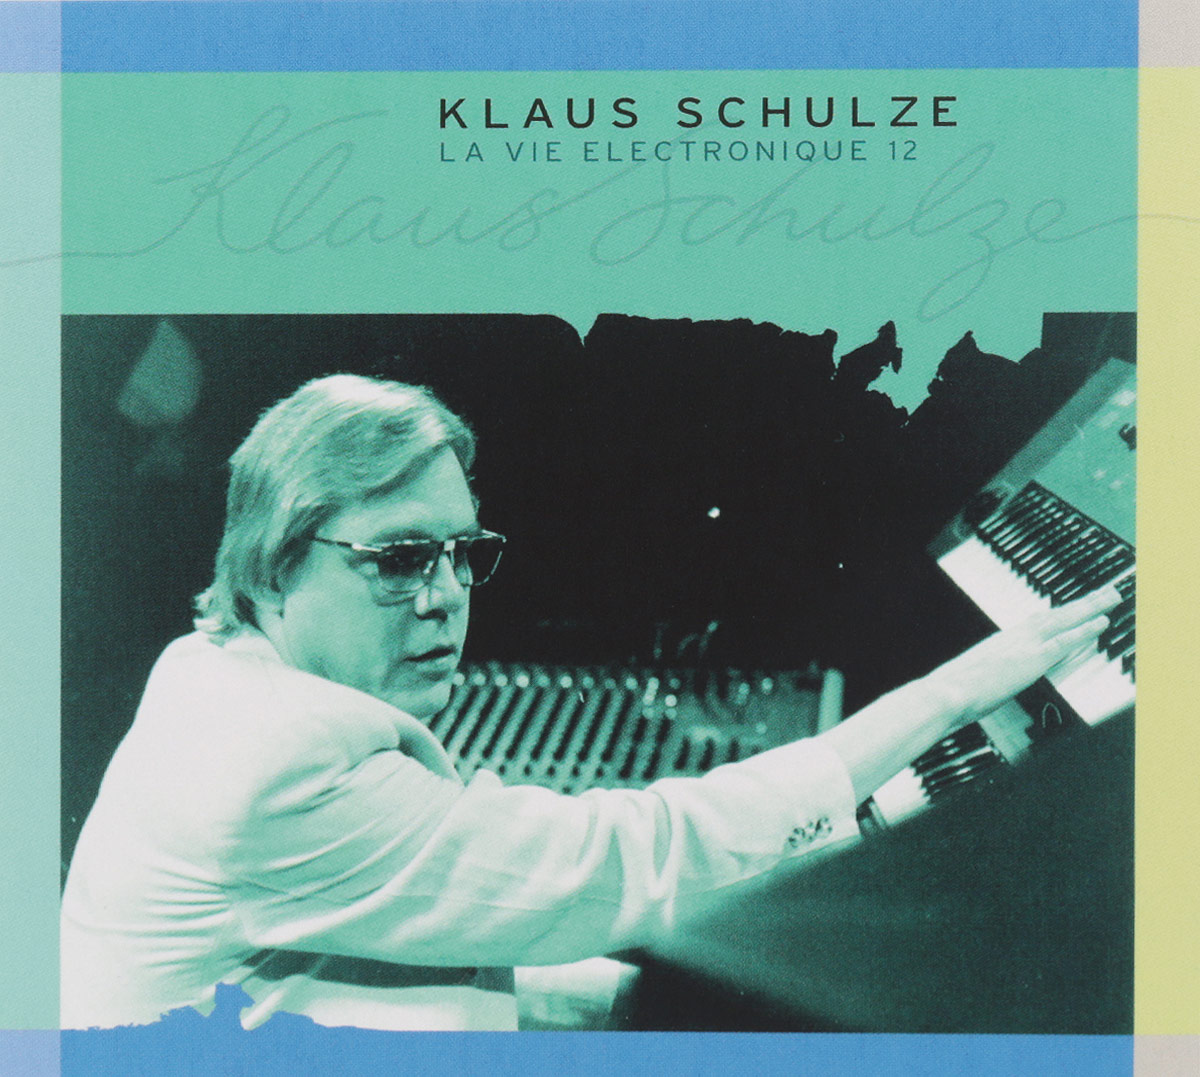 Клаус Шульце Klaus Schulze. La Vie Electronique 12 (3 CD) клаус шульце klaus schulze la vie electronique 11 3 cd